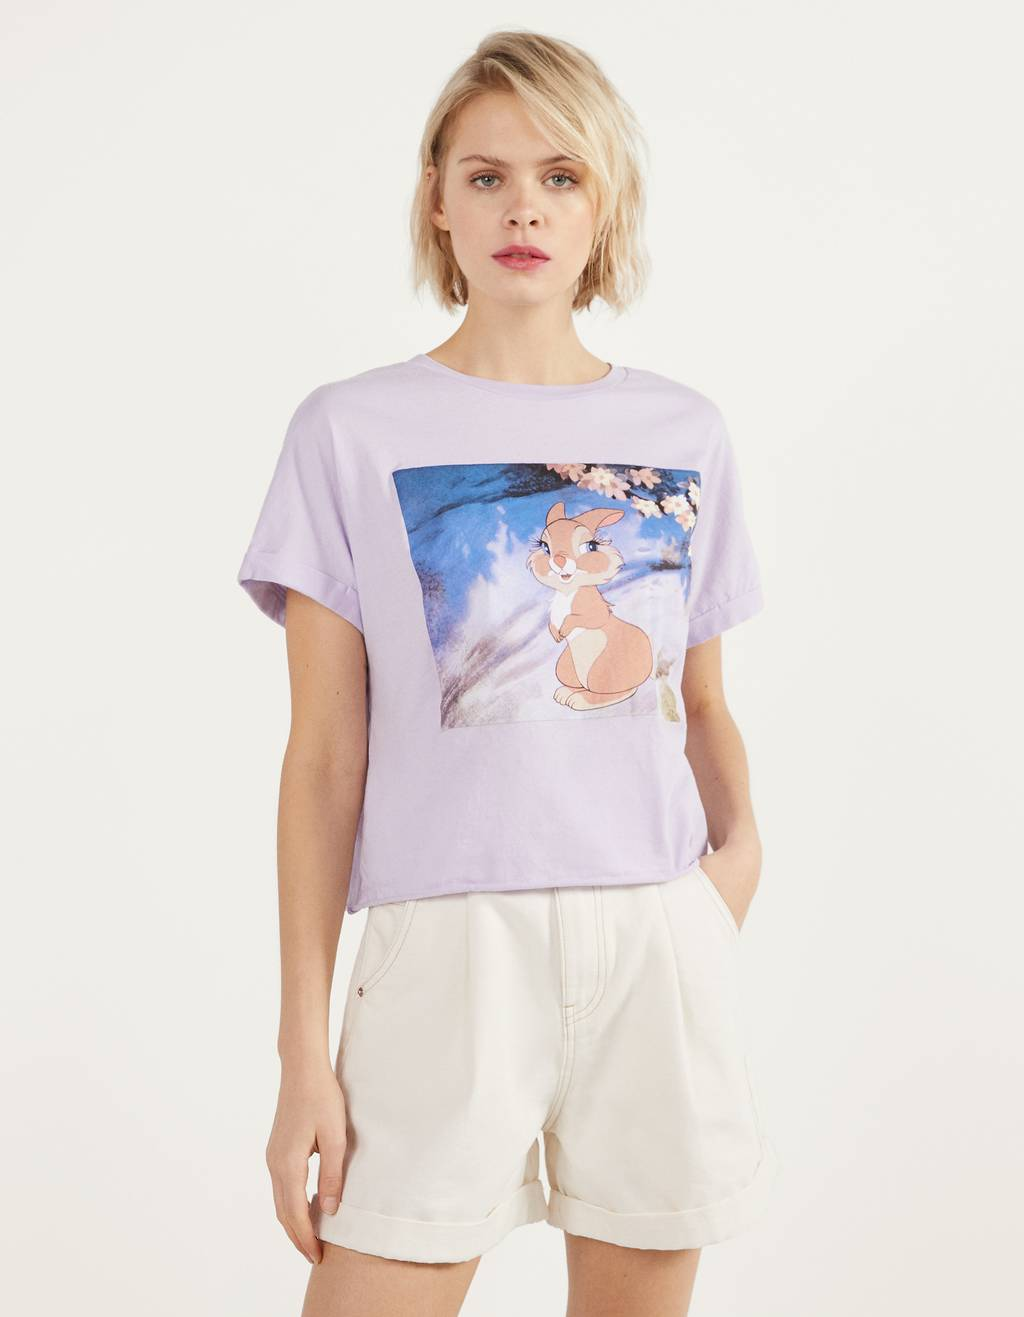 Stumpet T-shirt med Bambi